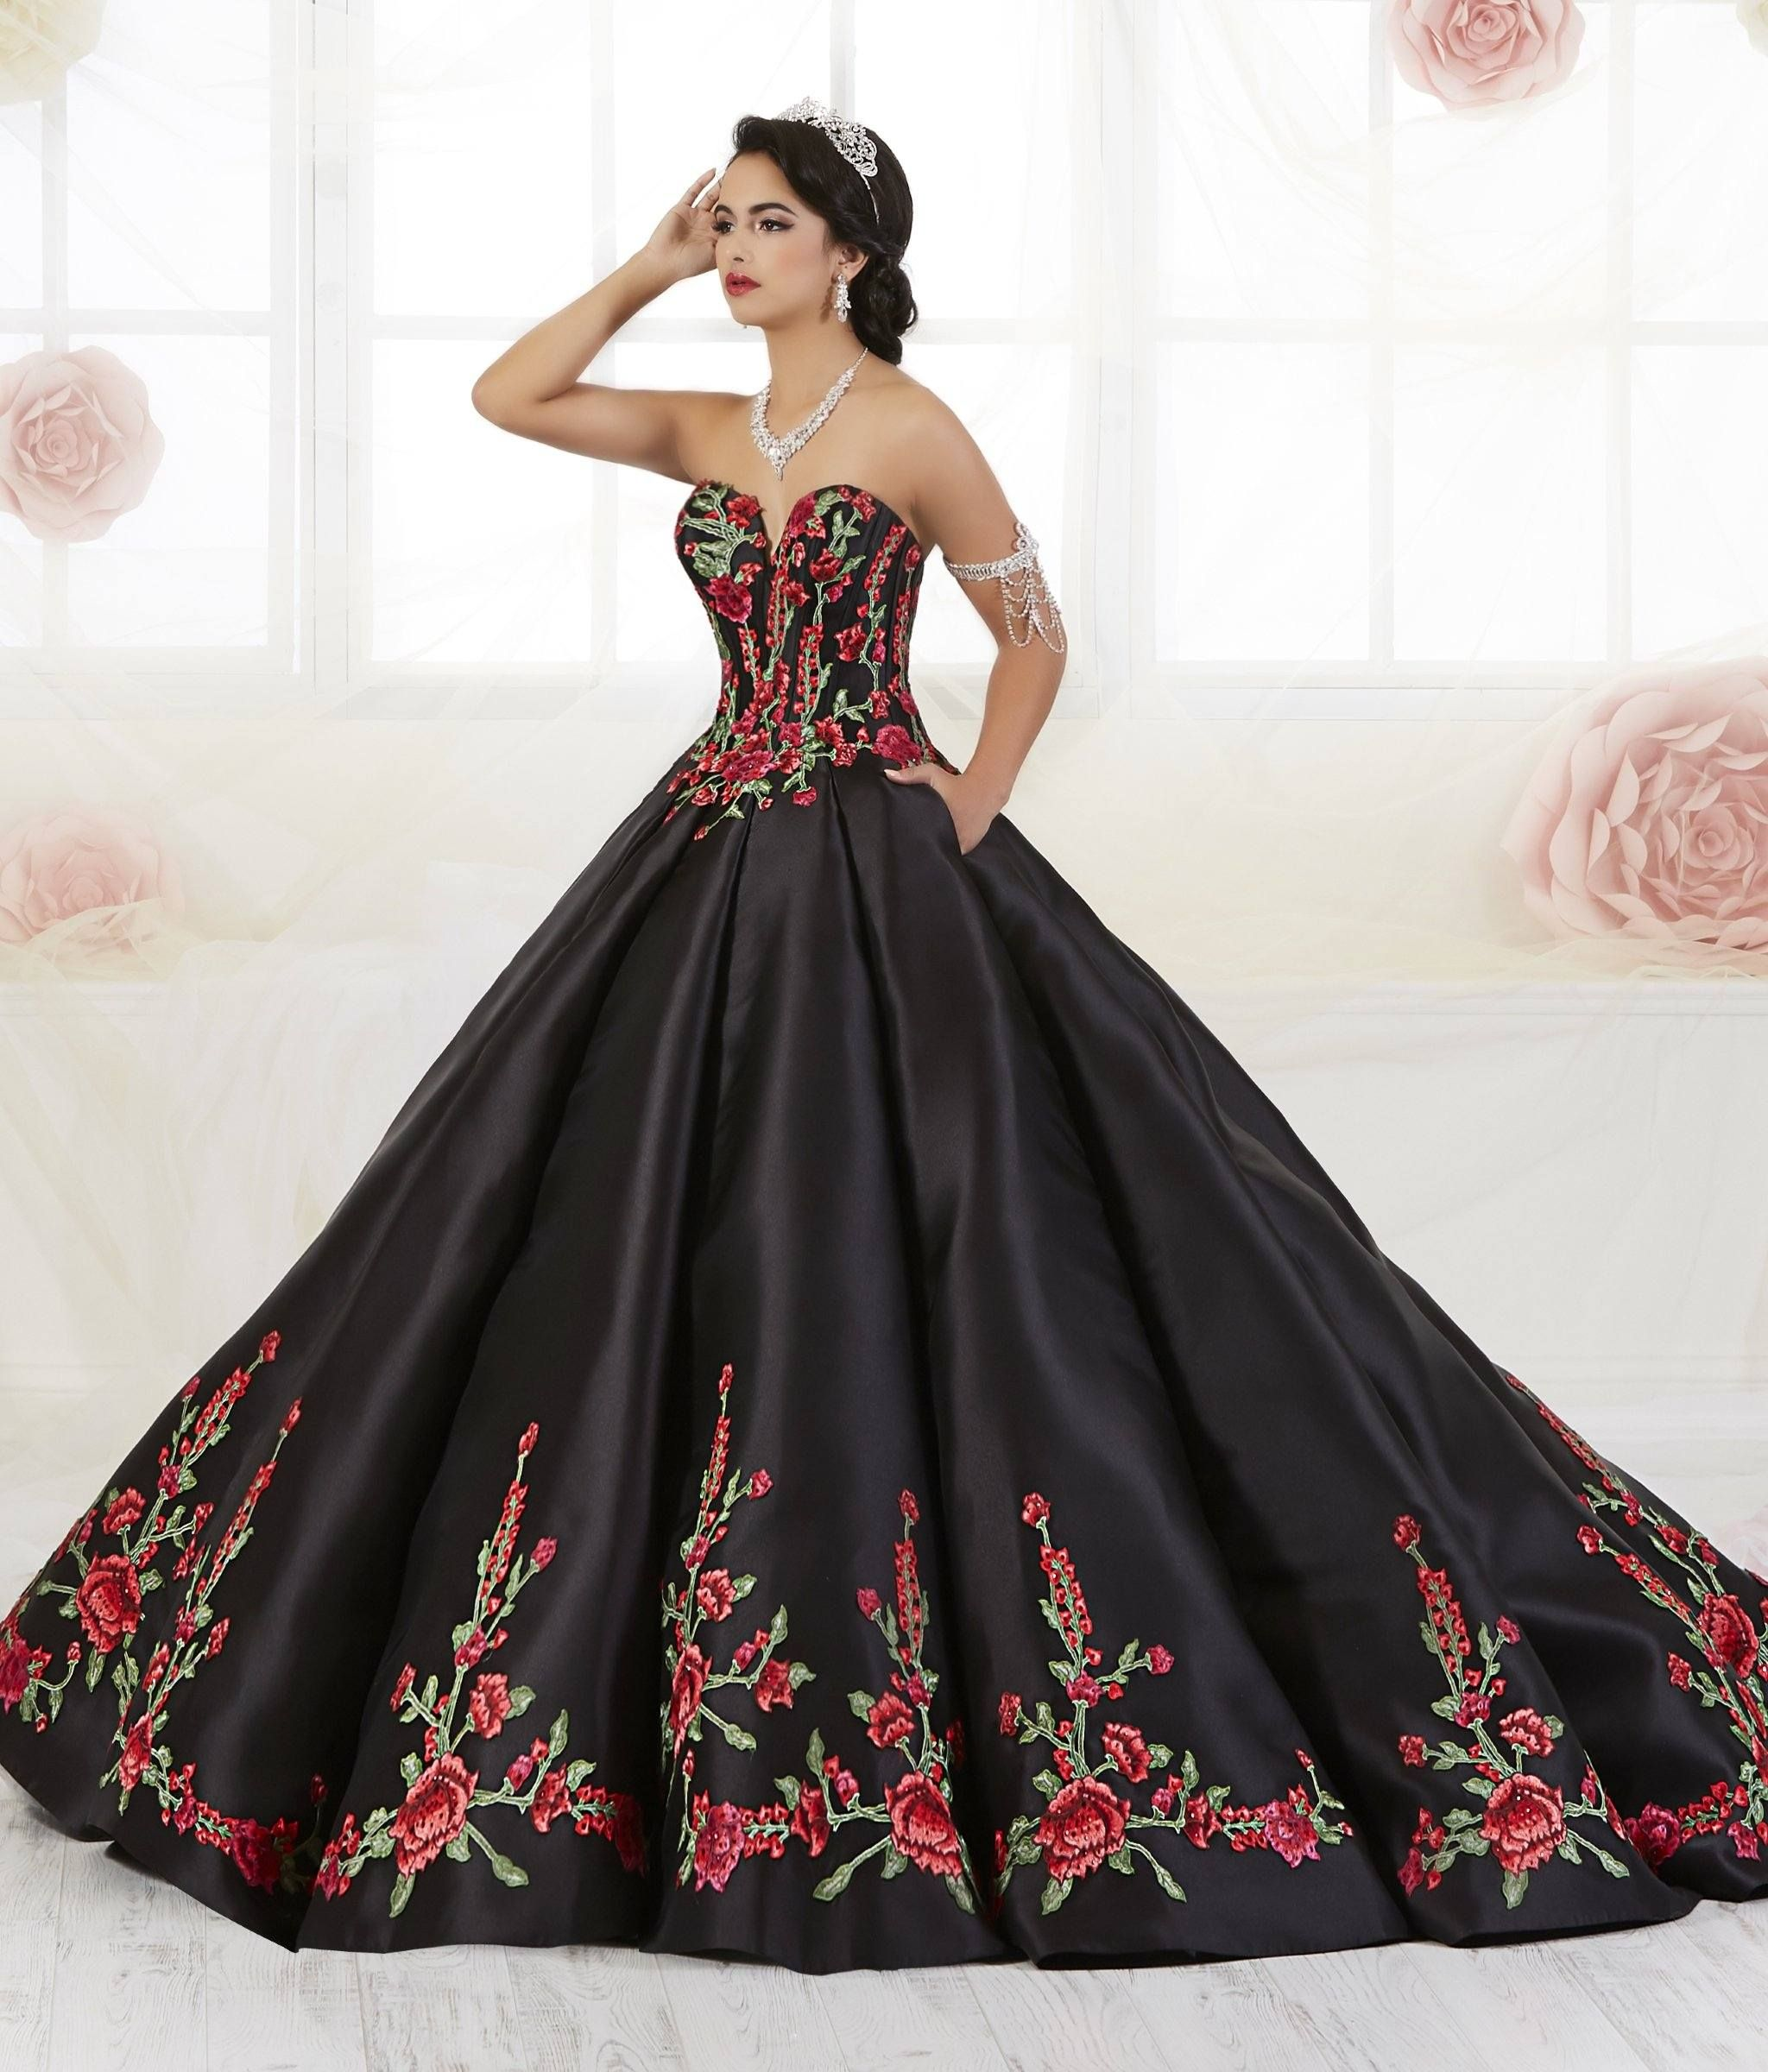 Floral Charro Quinceanera Dress By House Of Wu 26908 In 2021 Quince Dresses Mexican Mexican Quinceanera Dresses Quinceanera Dresses [ 2400 x 2048 Pixel ]